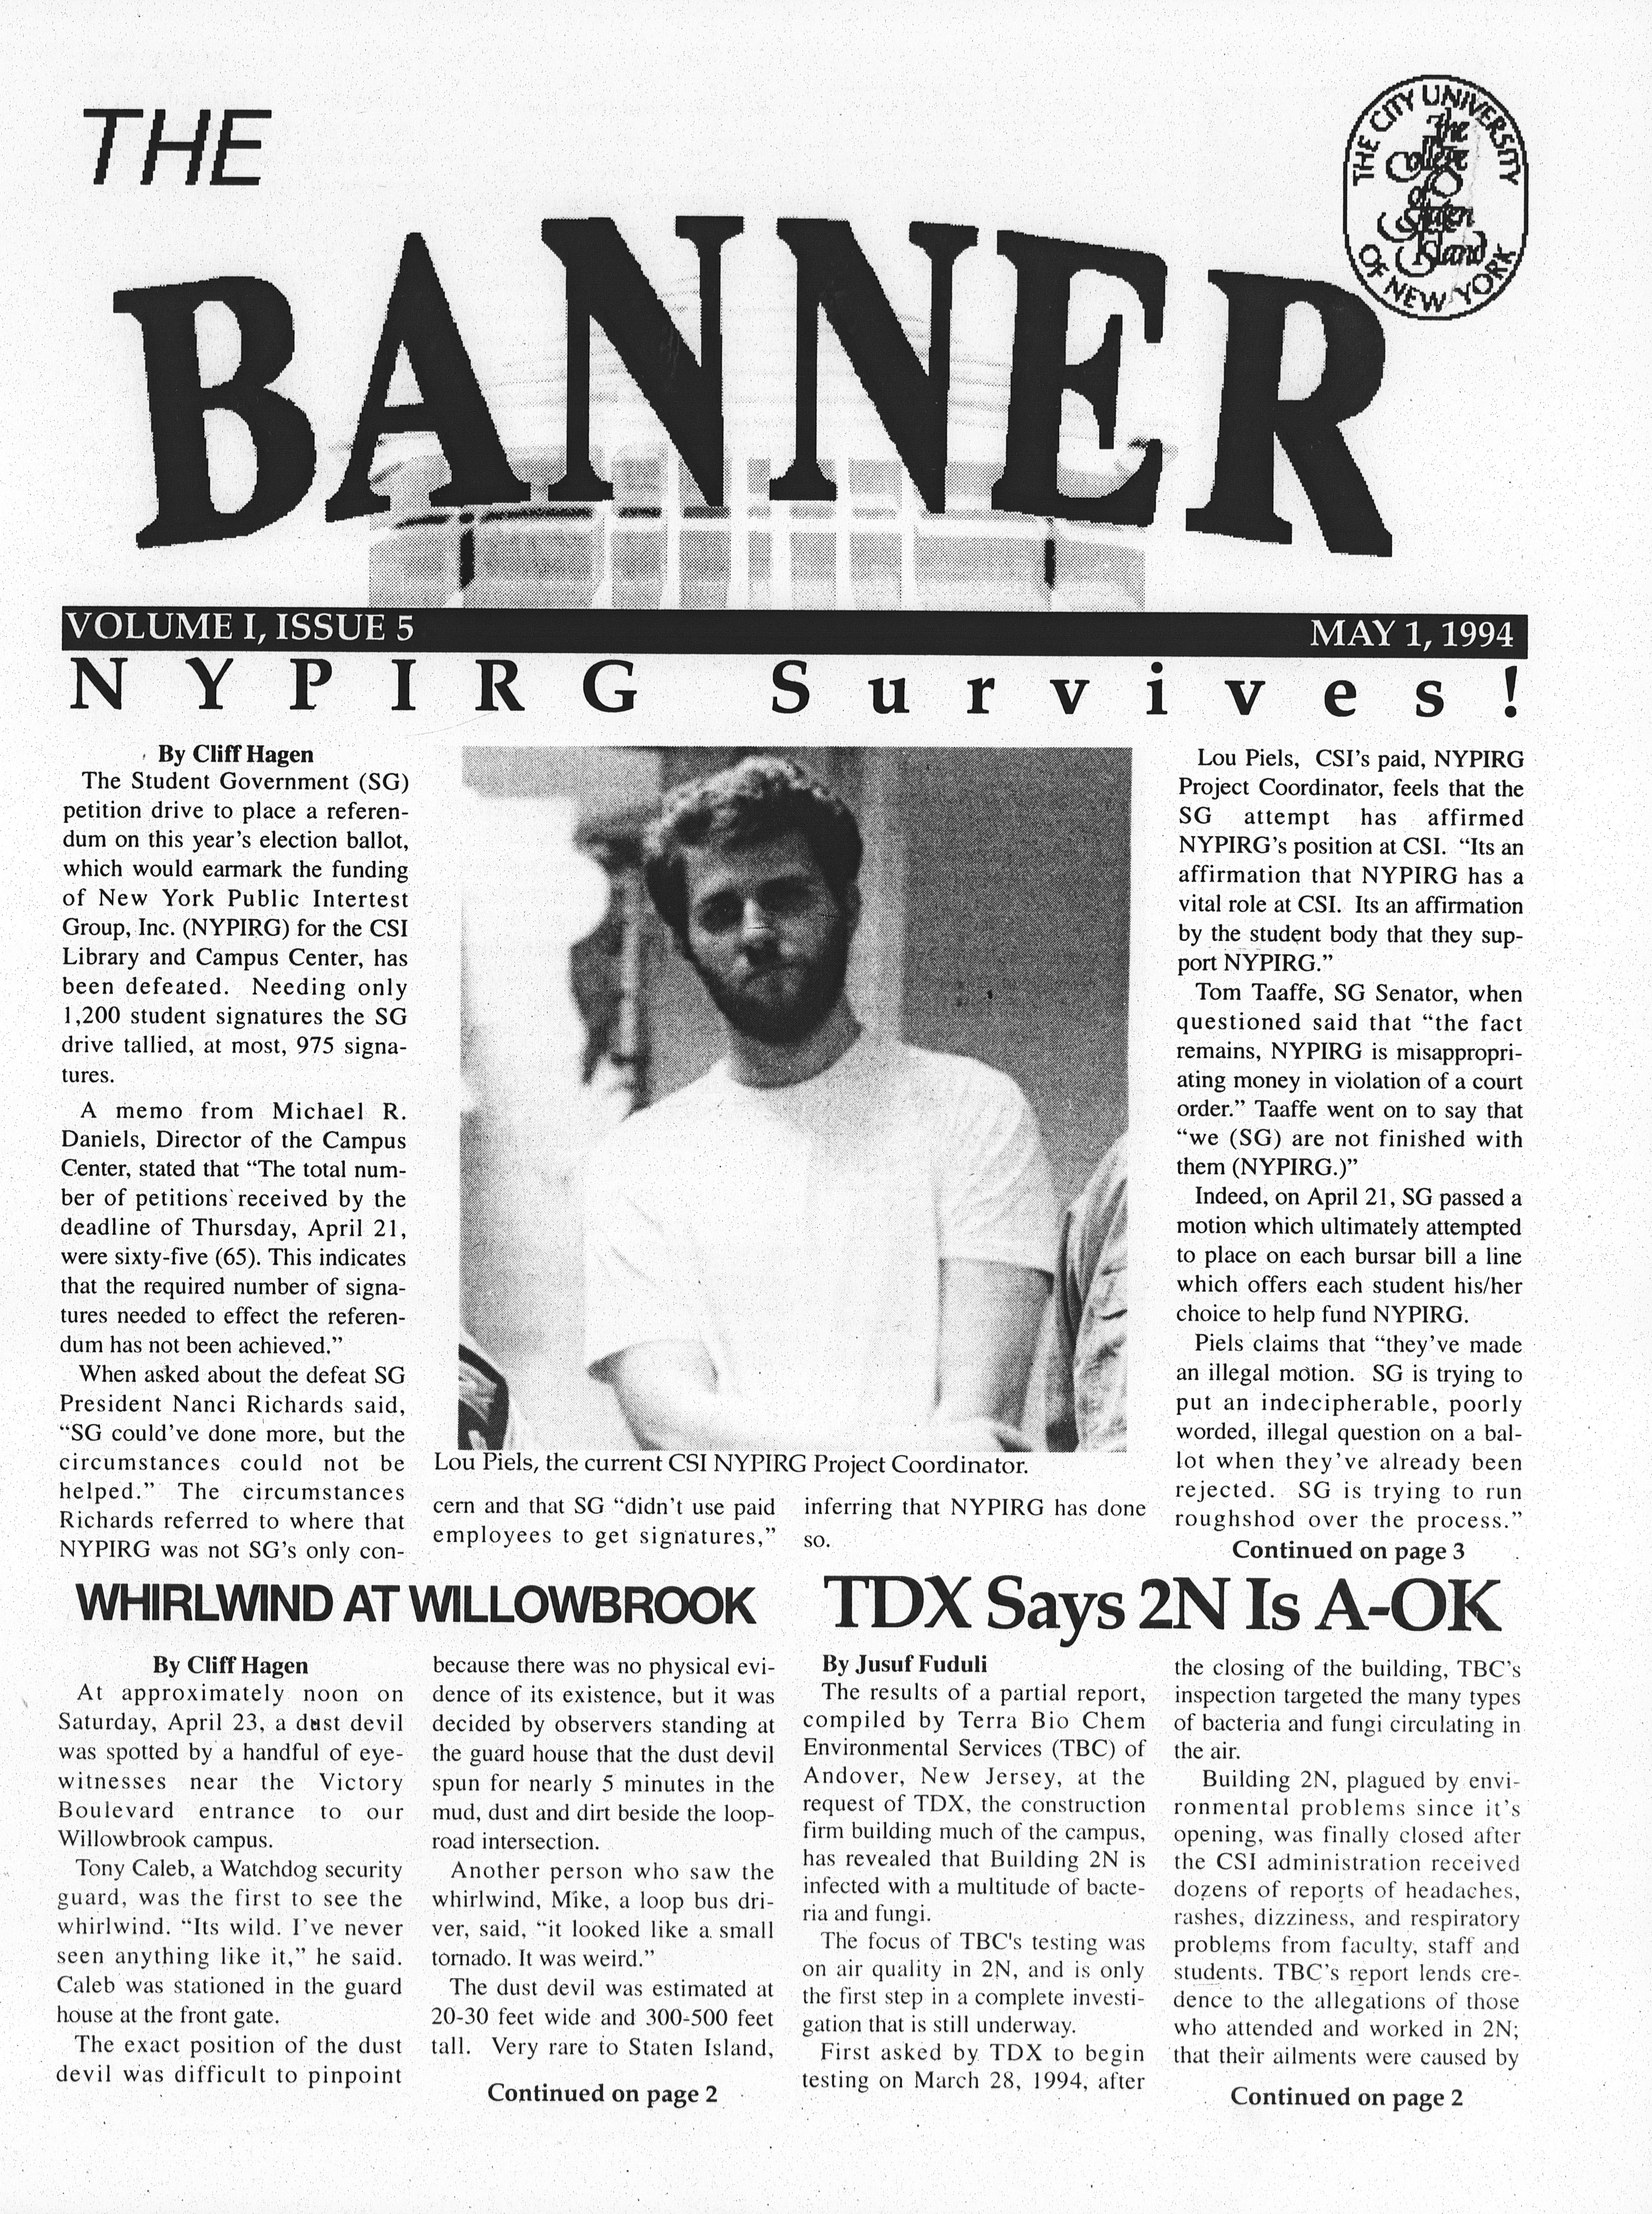 Cover image of the CSI student newspaper The Banner, Volume 1, Issue 5. Headline: NYPIRG Survives!